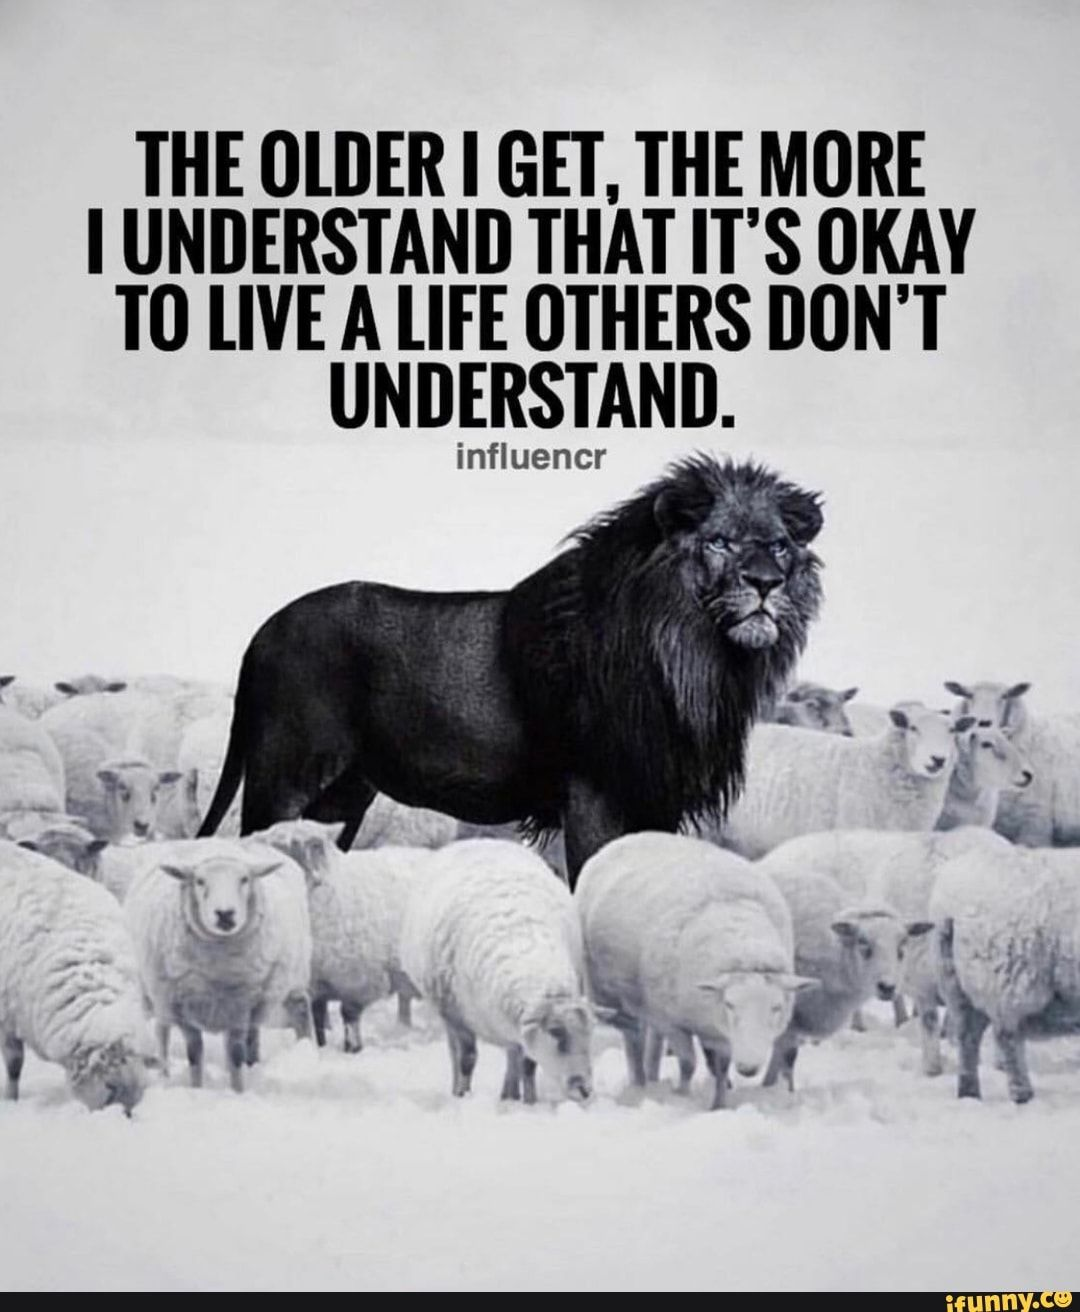 THE OLDER I GET. THE MORE I UNDERSTAND THAT IT'S OKAY TO [M A [IFE OTHERS DON'T UNDERSTAND. influencr - )